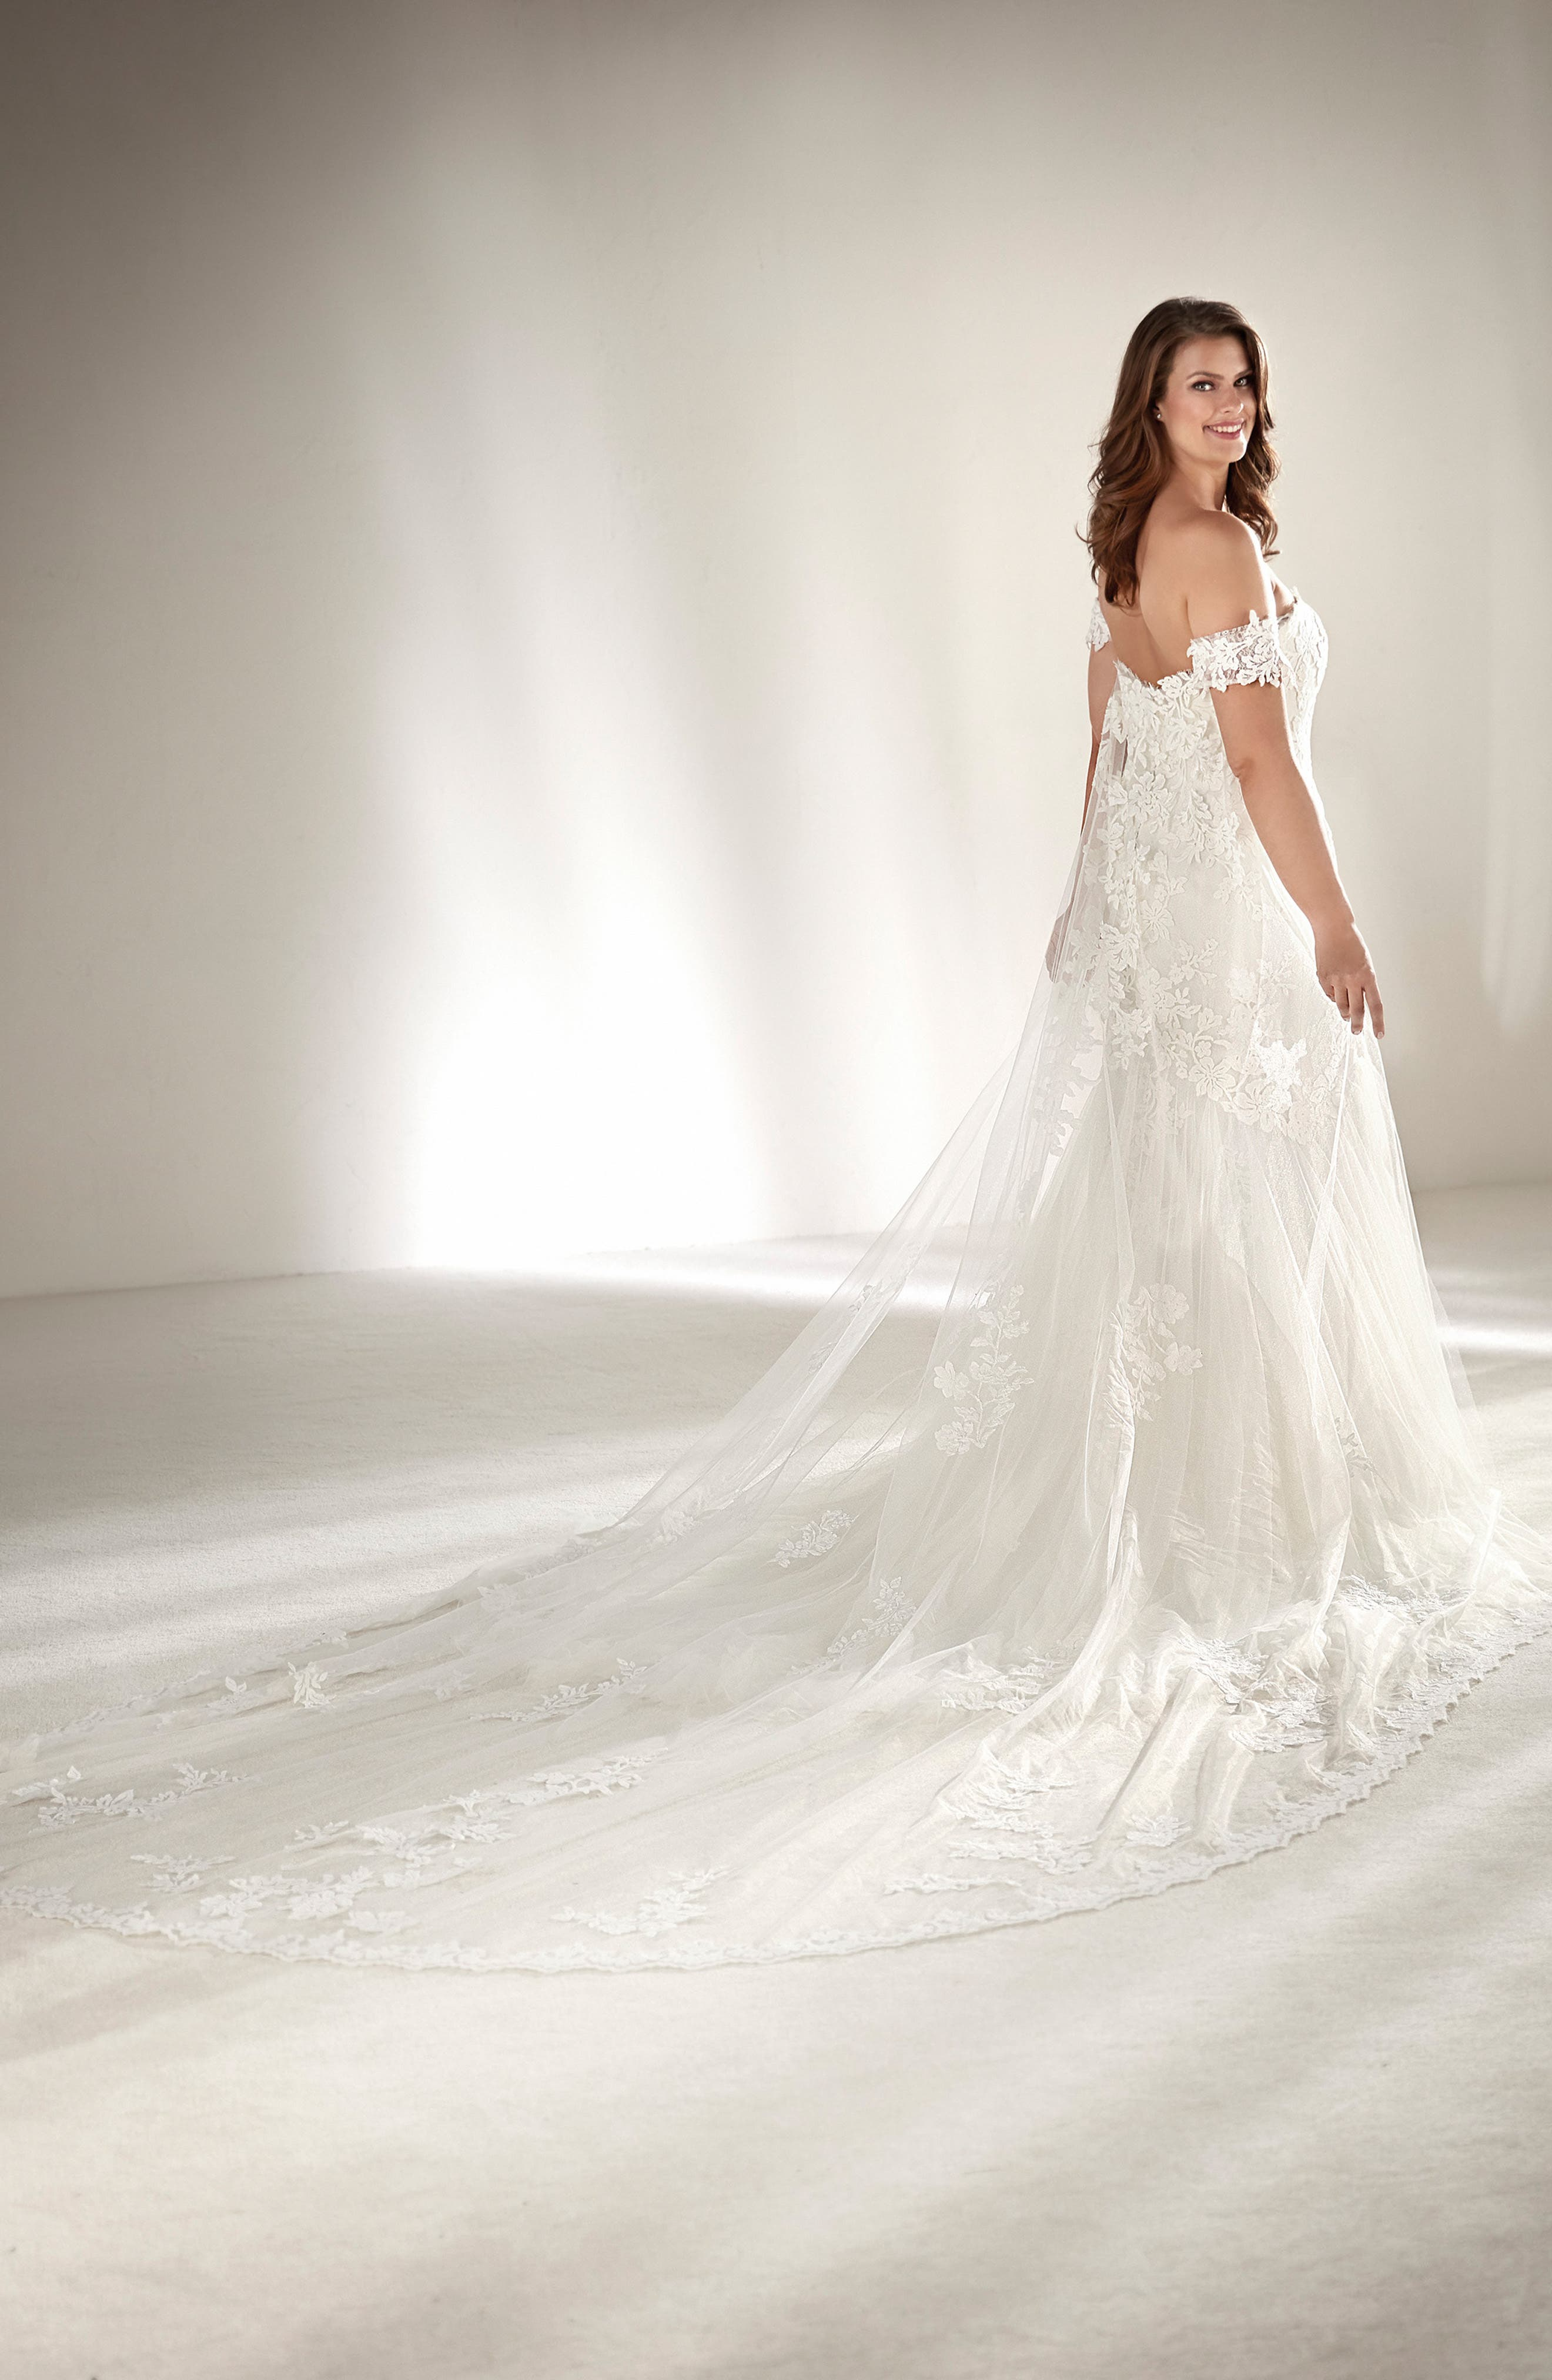 Drimea Strapless Mermaid Gown with Tulle Cape,                             Alternate thumbnail 2, color,                             Off White